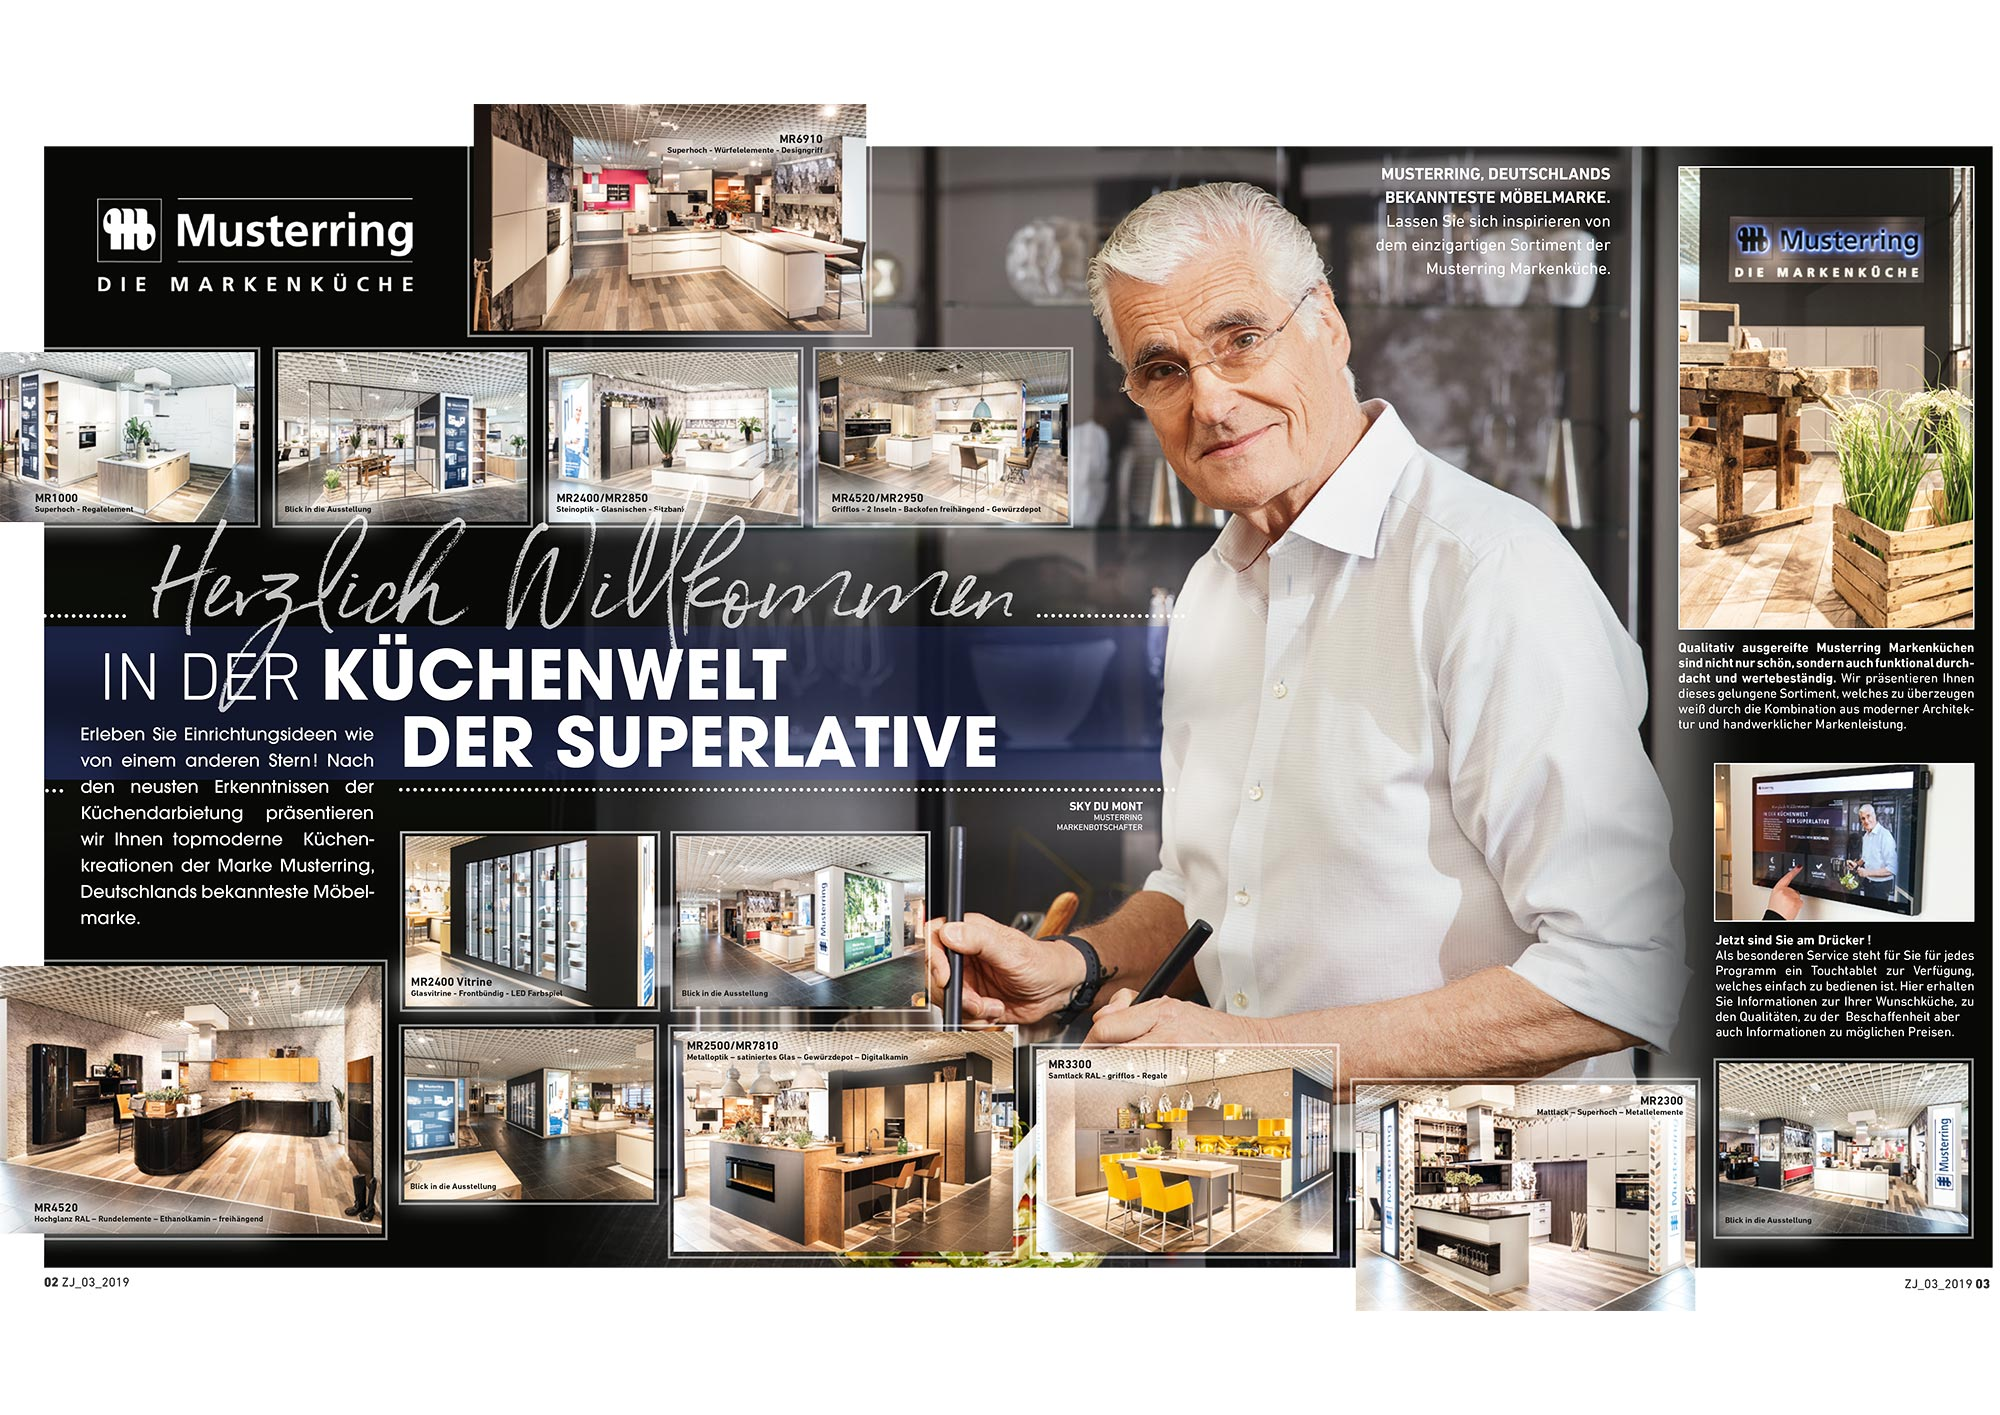 kche aktuell prospekt kuchen aktuell prospekt berlin kuchen aktuell prospekt haus mobel kuchen. Black Bedroom Furniture Sets. Home Design Ideas